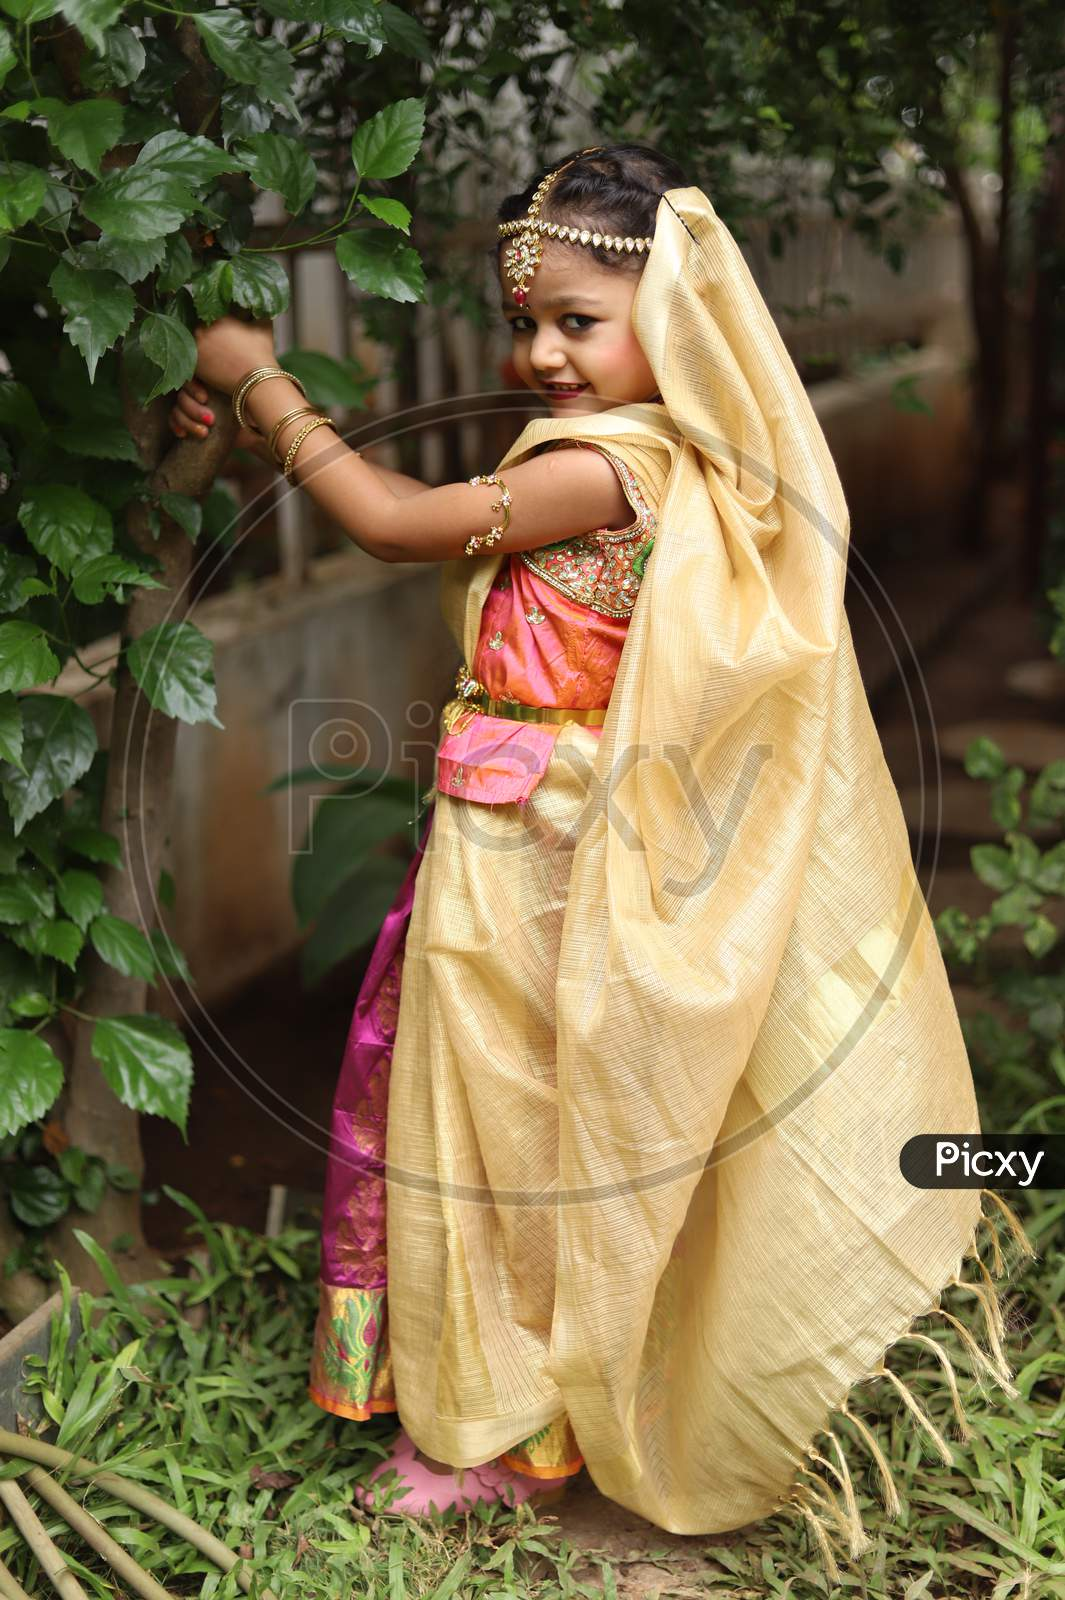 Cute little girl dressed in traditional Indian sari